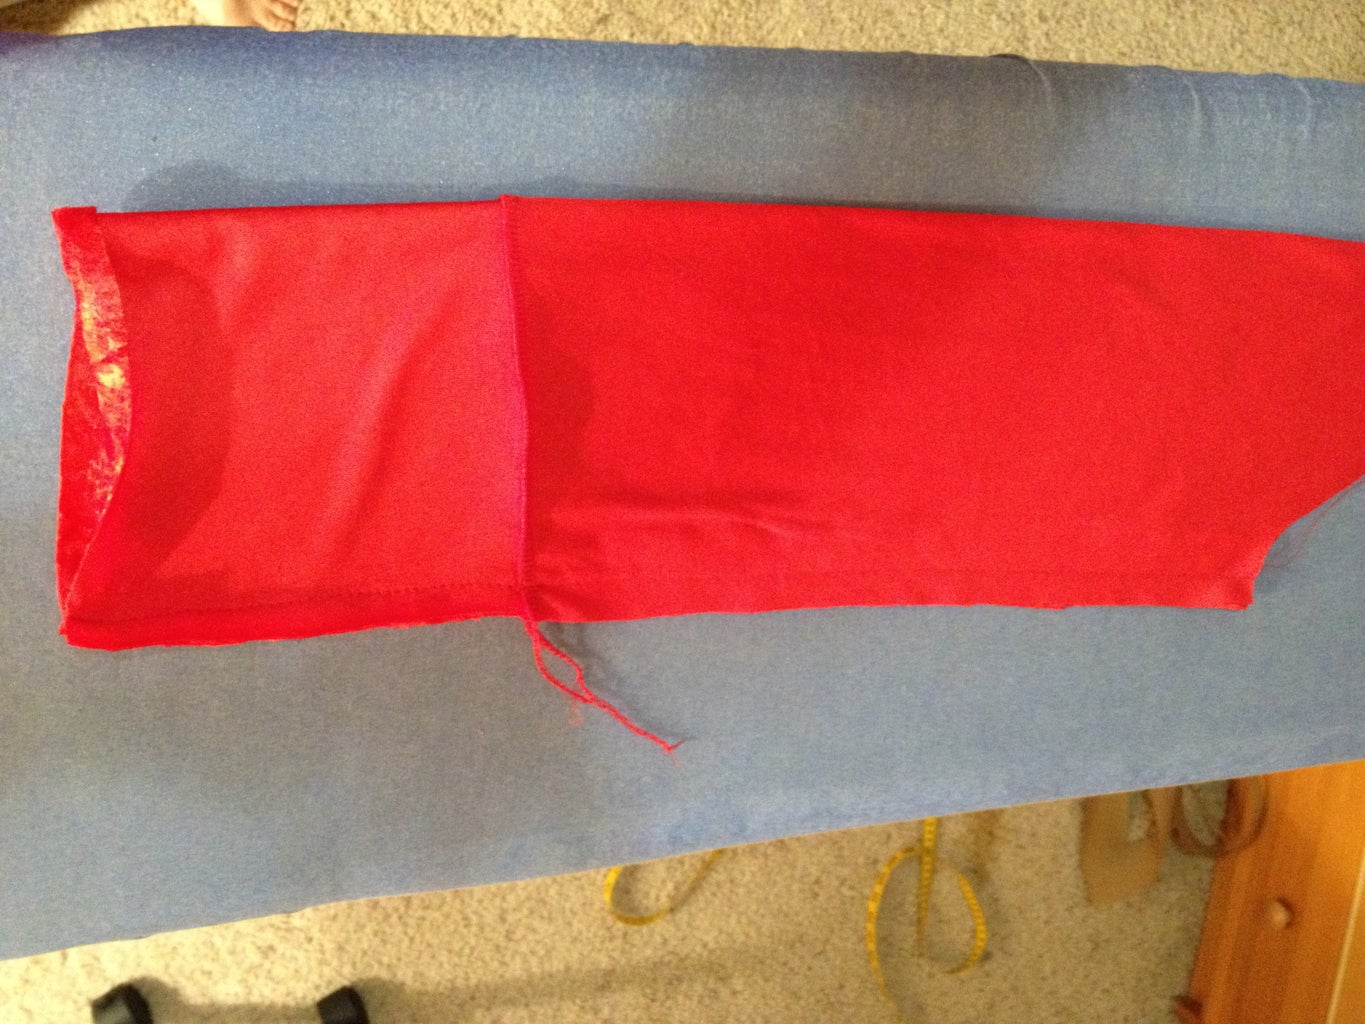 Sleeves, Attaching the Cuff